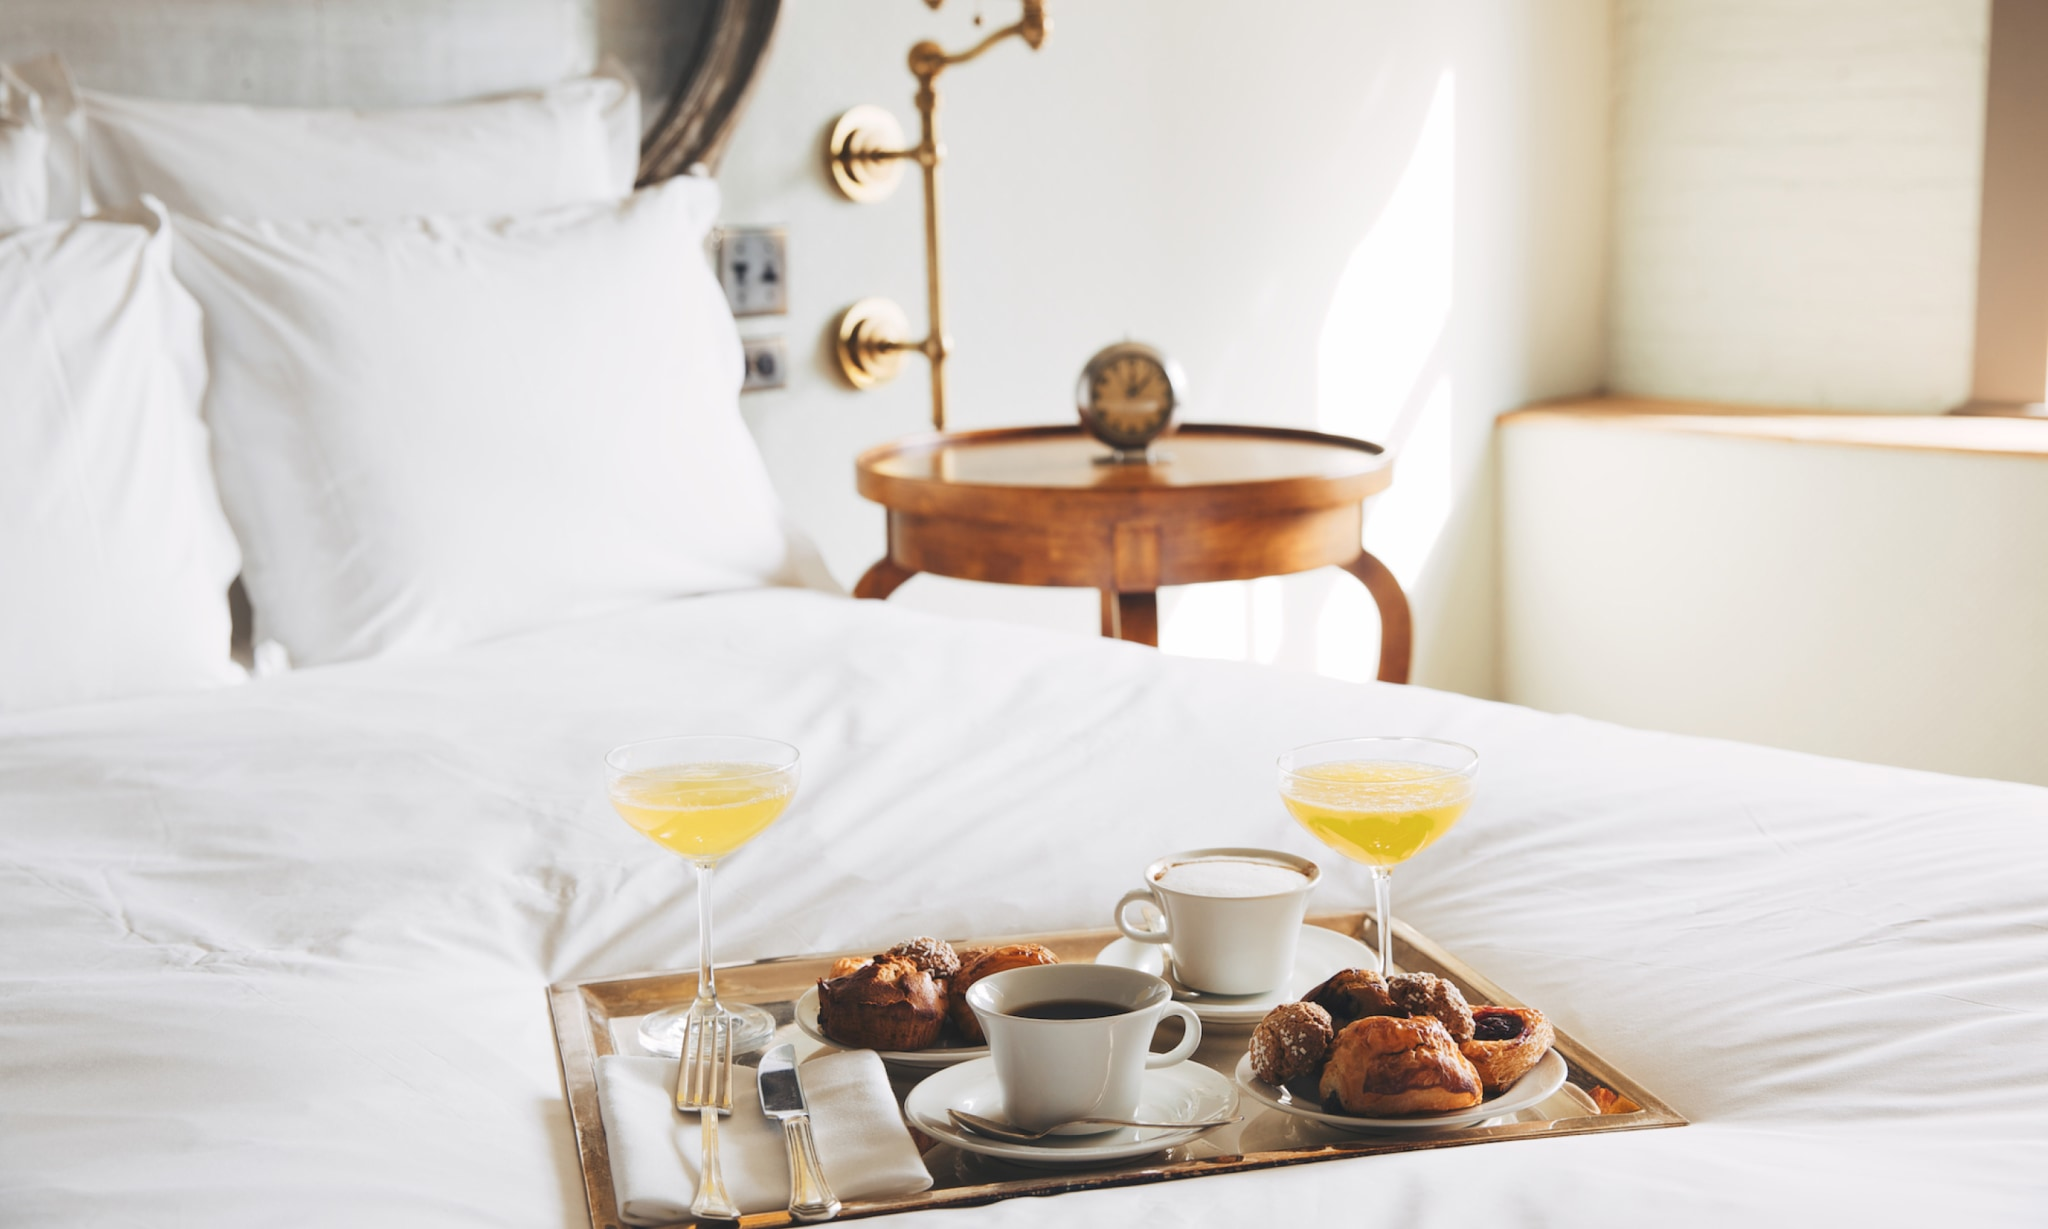 A bed with white bed linen and a tray of room service breakfast on it.